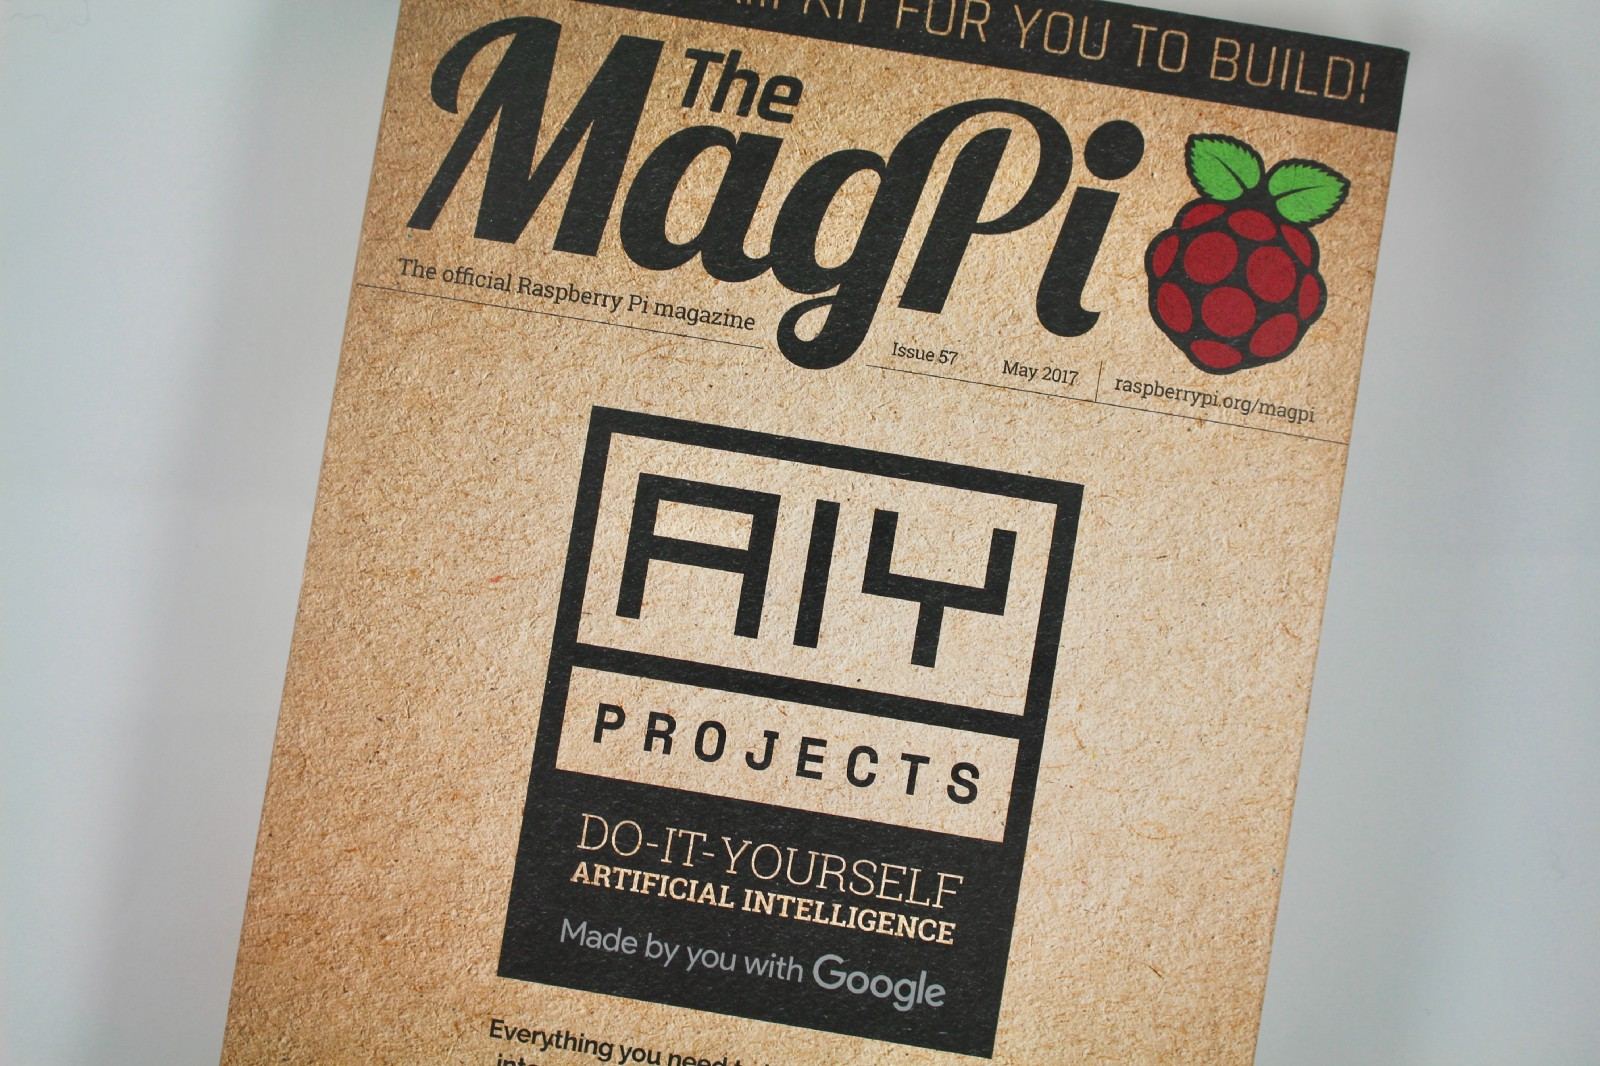 Do it yourself artificial intelligence alasdair allan medium the aiy projects voice kit free on the cover of issue 57 of the magpi solutioingenieria Image collections